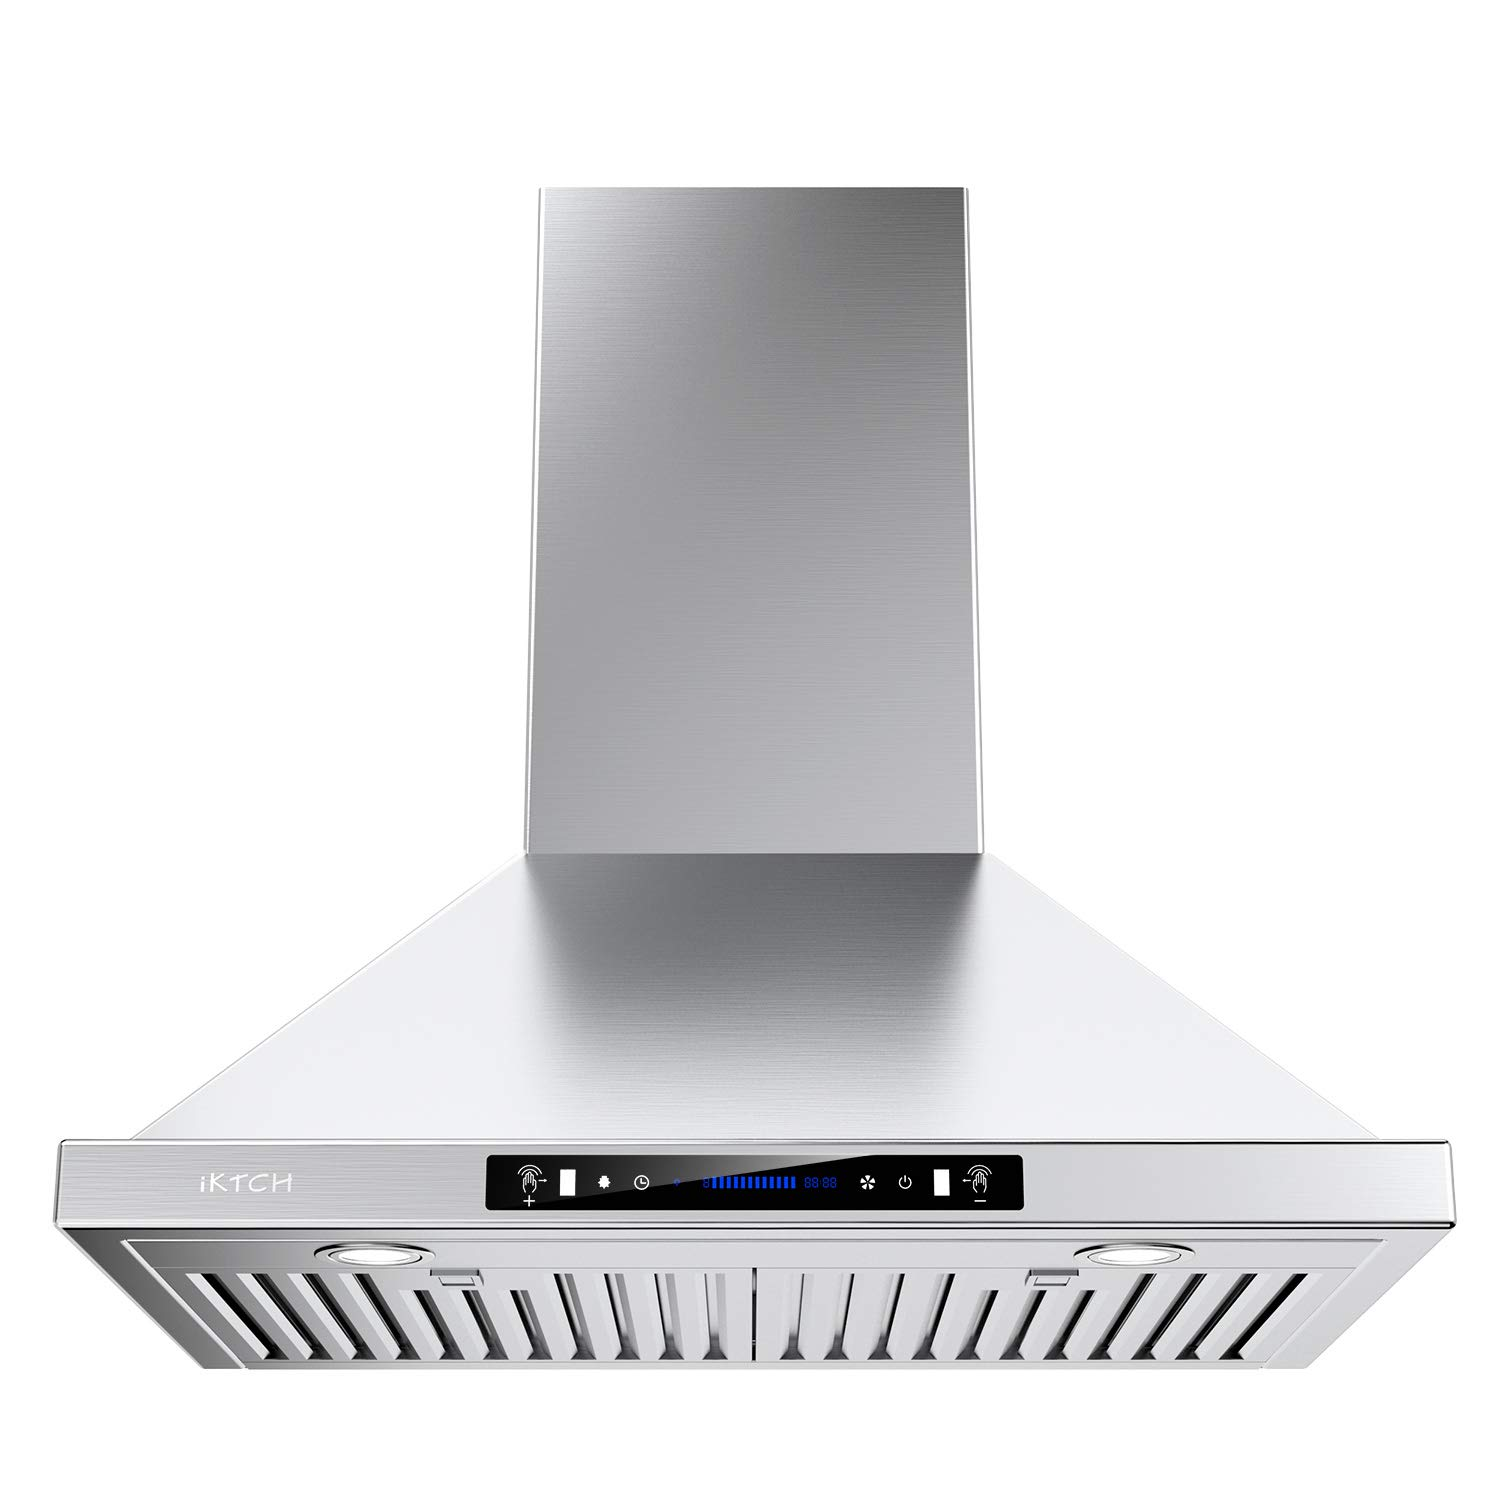 IKTCH Wall Mount Range Hood 30 inch Gesture Sensing & Touch Control Switch Panel Kitchen Vent Hood 900 CFM | Ducted/Ductless Convertible Duct, 2 Pcs Lights Adjustable (Stainless Steel 30'')